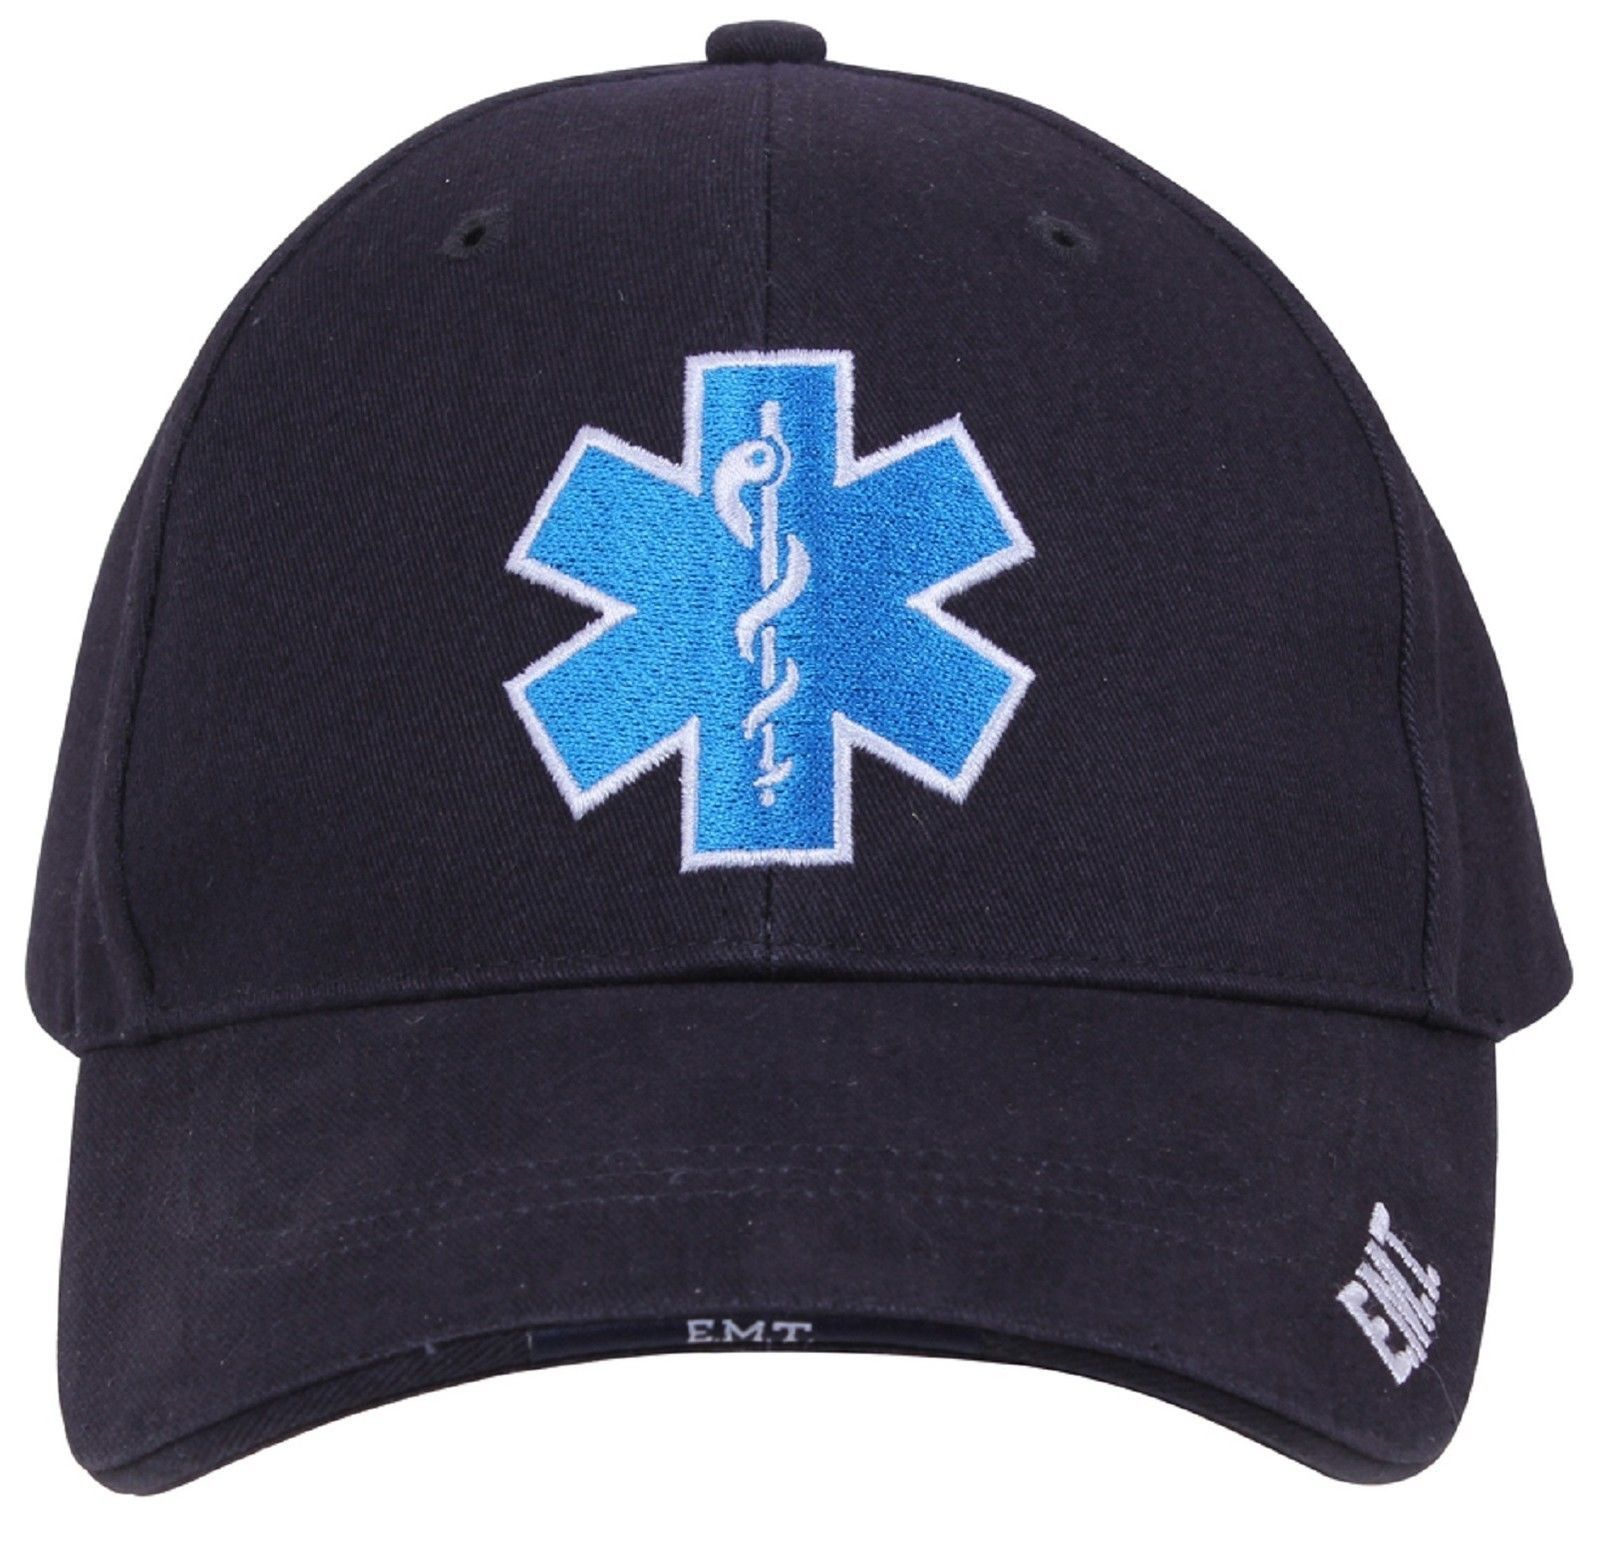 dfc40308c4f9f Men s Navy Blue Embroidered Star of Life EMS EMT Logo Deluxe Low Profile  Cap Hat